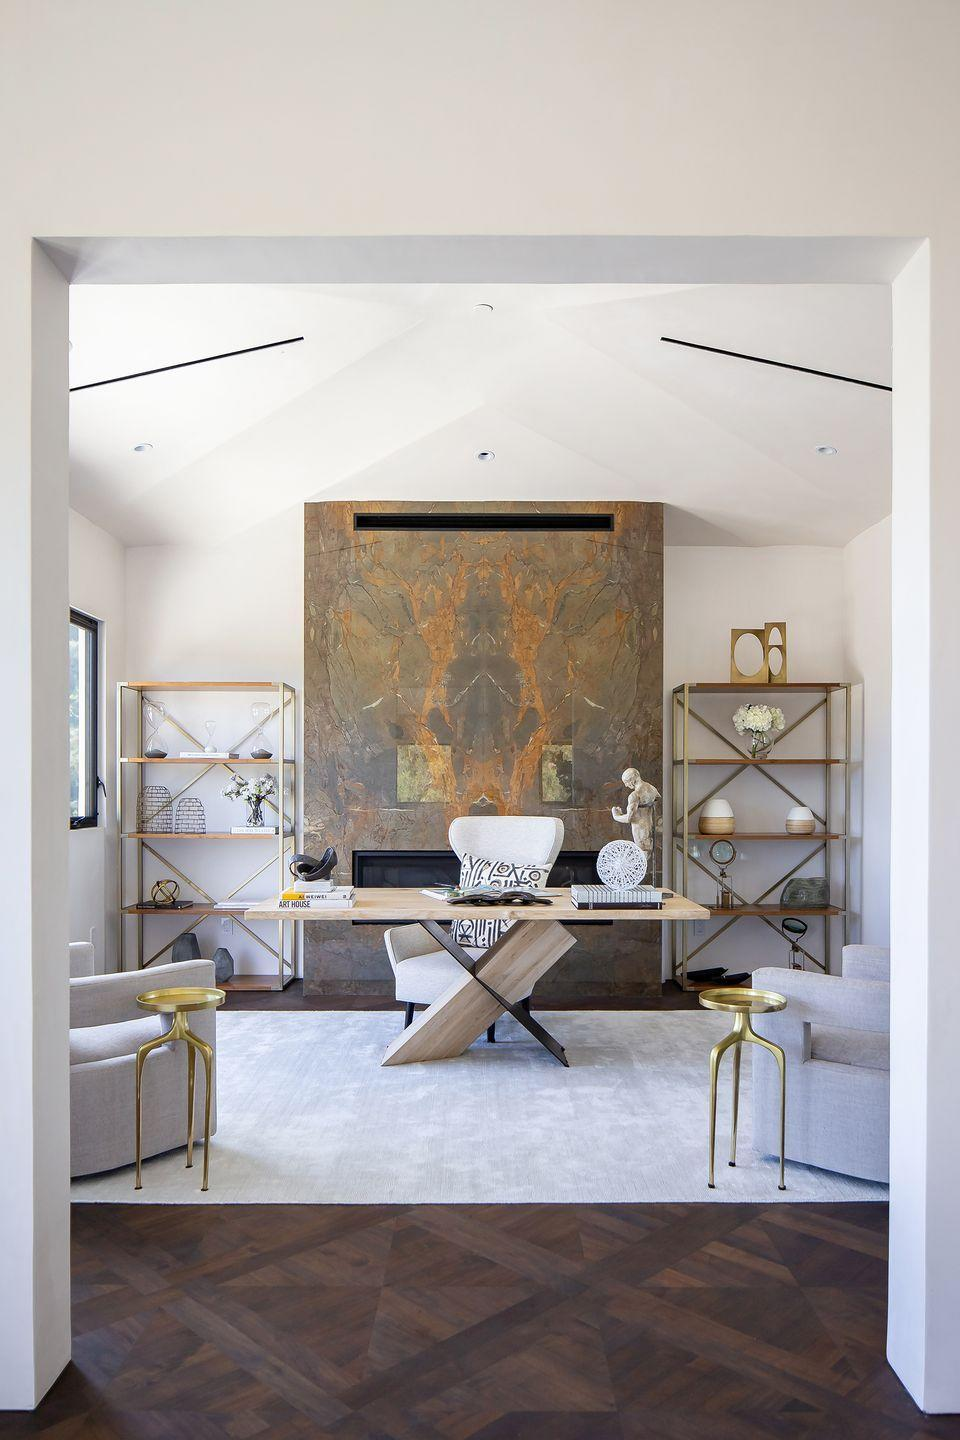 """<p>Warm up an open and airy home office with a fireplace that features an earth-toned facade, like this one in a large space <a href=""""https://www.housebeautiful.com/design-inspiration/house-tours/a33930929/breegan-jane-unica-tour/"""" rel=""""nofollow noopener"""" target=""""_blank"""" data-ylk=""""slk:designed"""" class=""""link rapid-noclick-resp"""">designed</a> by <a href=""""https://breeganjane.com/"""" rel=""""nofollow noopener"""" target=""""_blank"""" data-ylk=""""slk:Breegan Jane."""" class=""""link rapid-noclick-resp"""">Breegan Jane.</a> The marble introduces sophisticated, formal style to the more casual elements but it also helps to bring the scale of the ceilings down to a more intimate, human scale. </p>"""